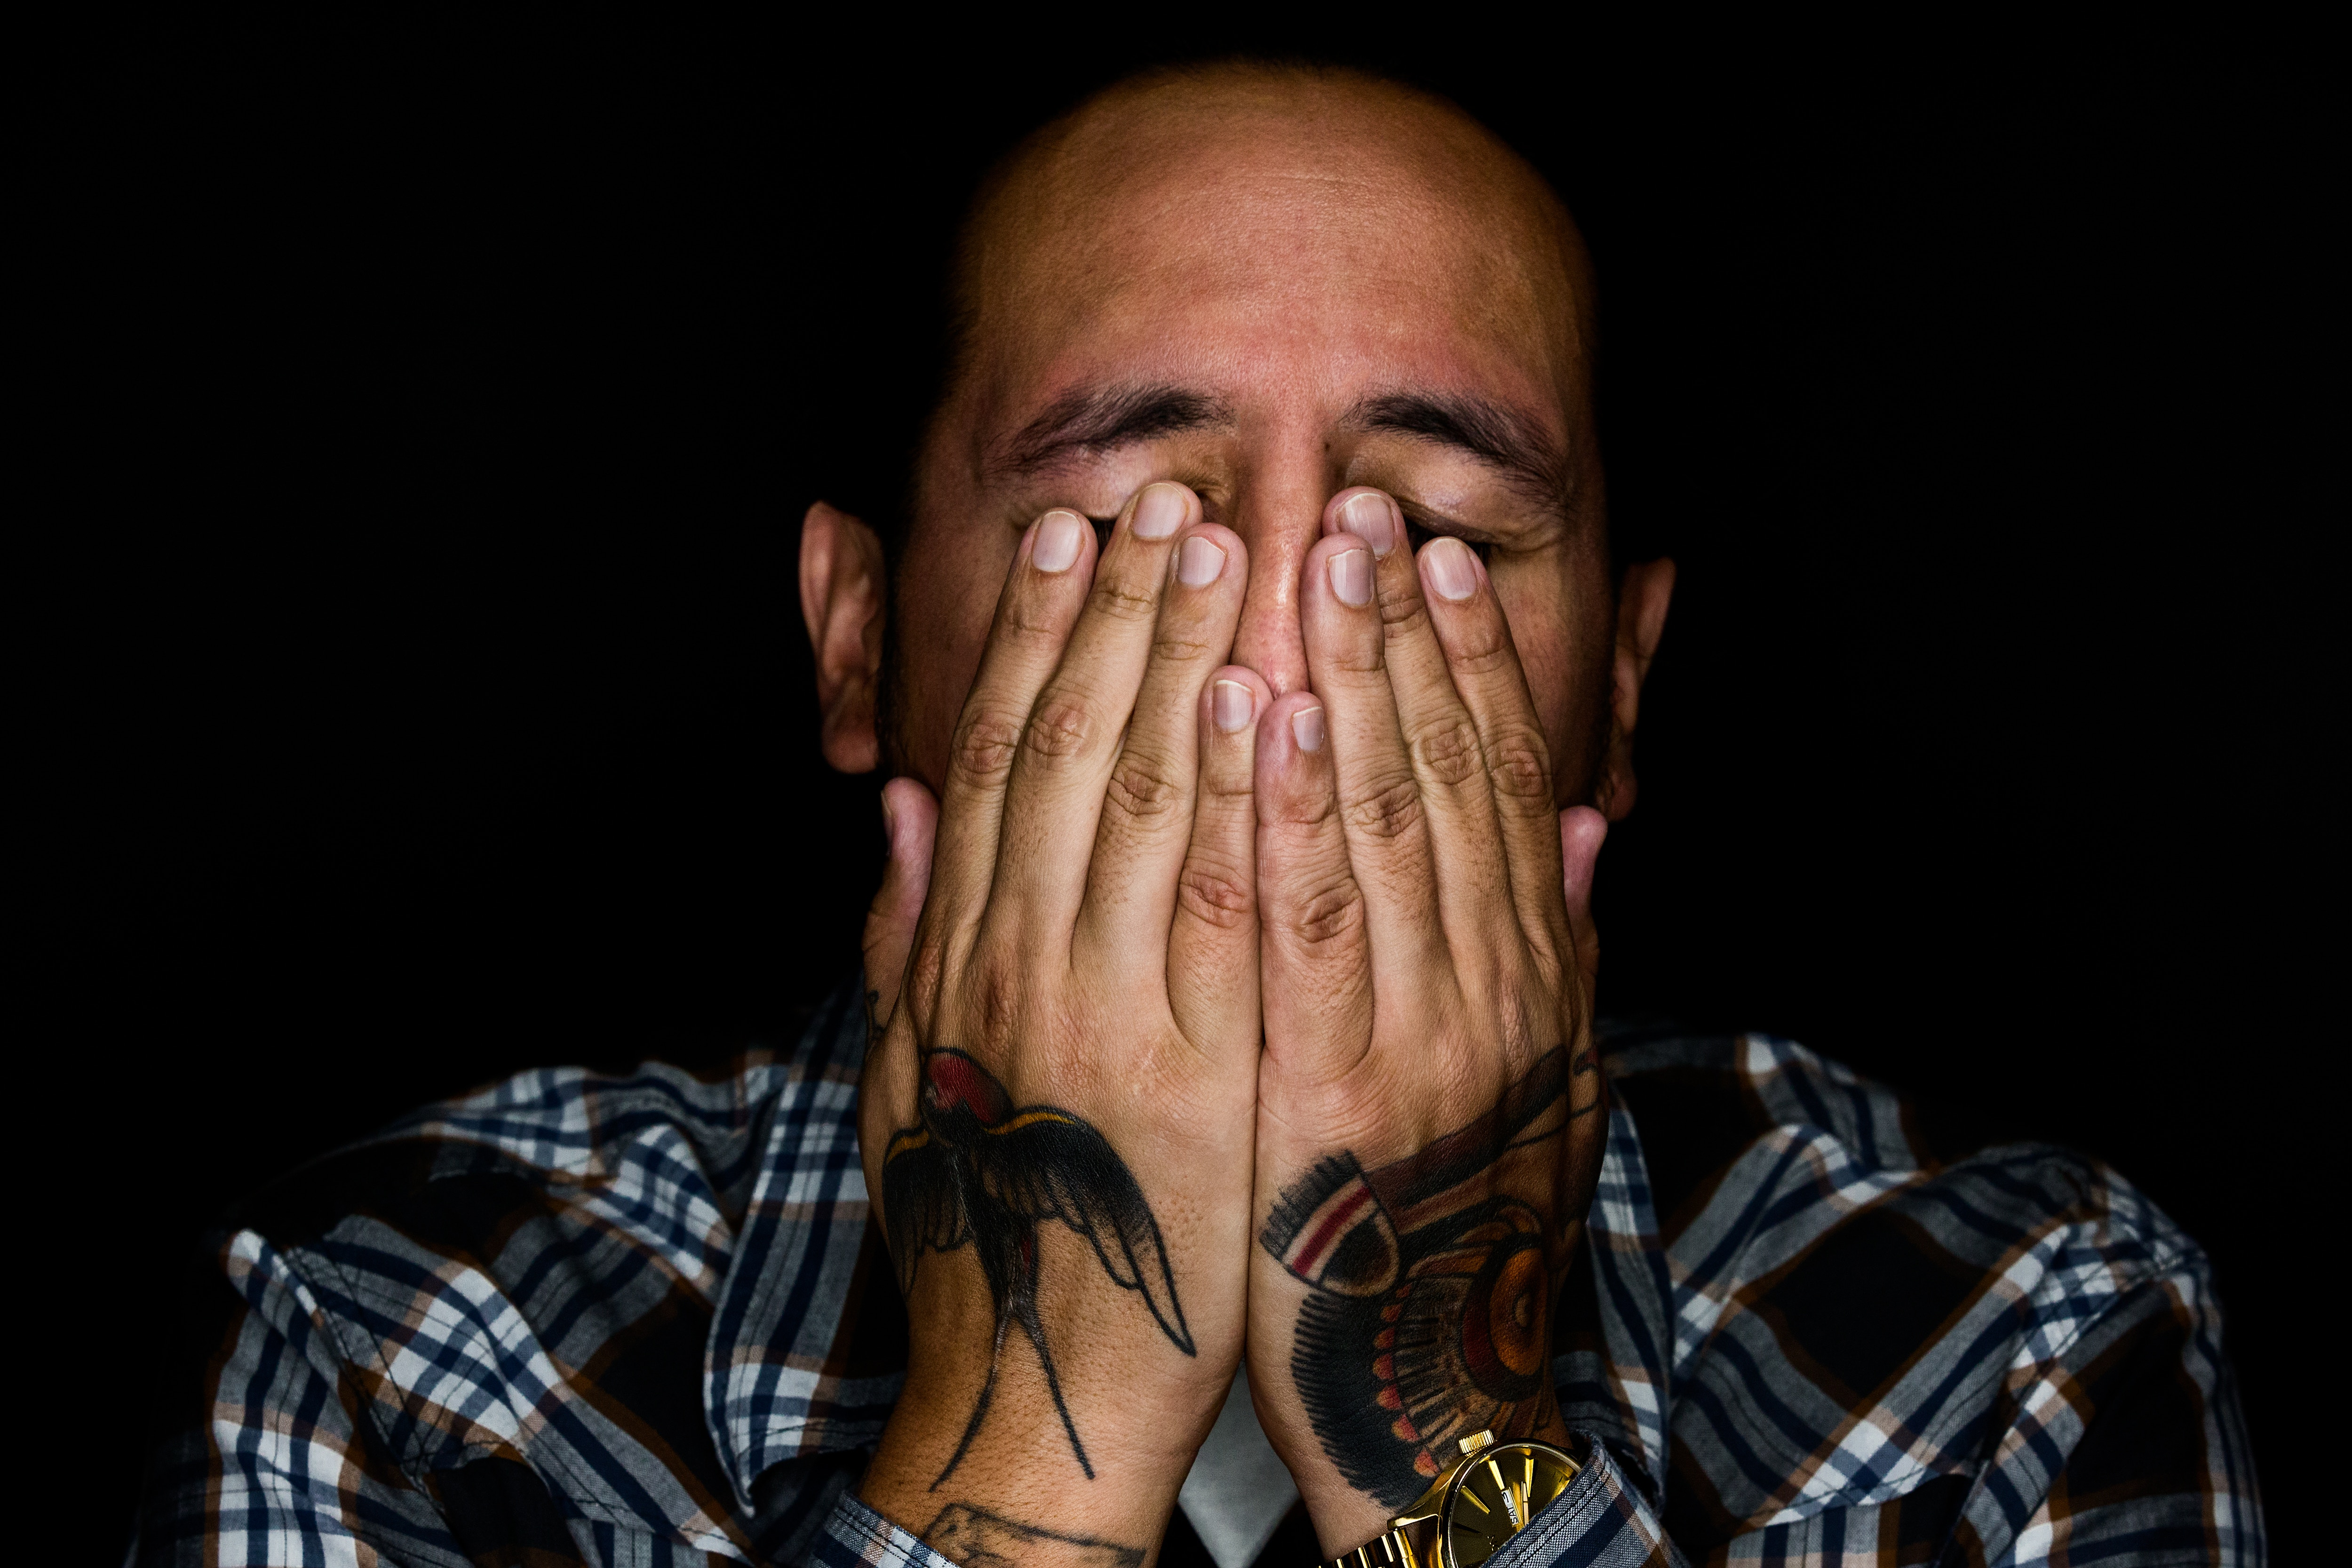 A man with tattoos on his hands covers his face in consternation. He's wearing a blue flannel shirt.